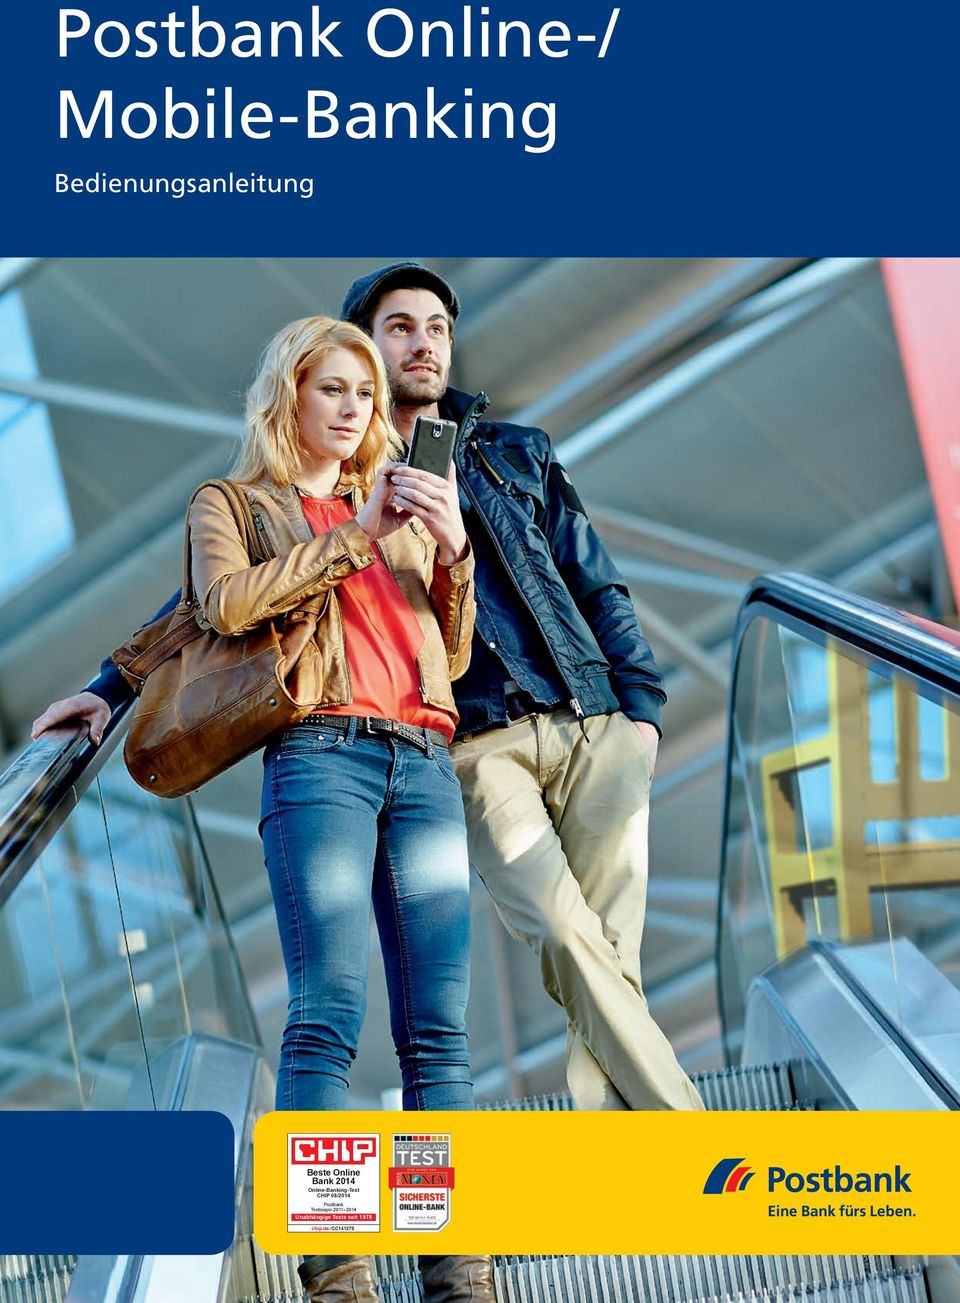 Online-Banking-Test CHIP 08/2014 Postbank